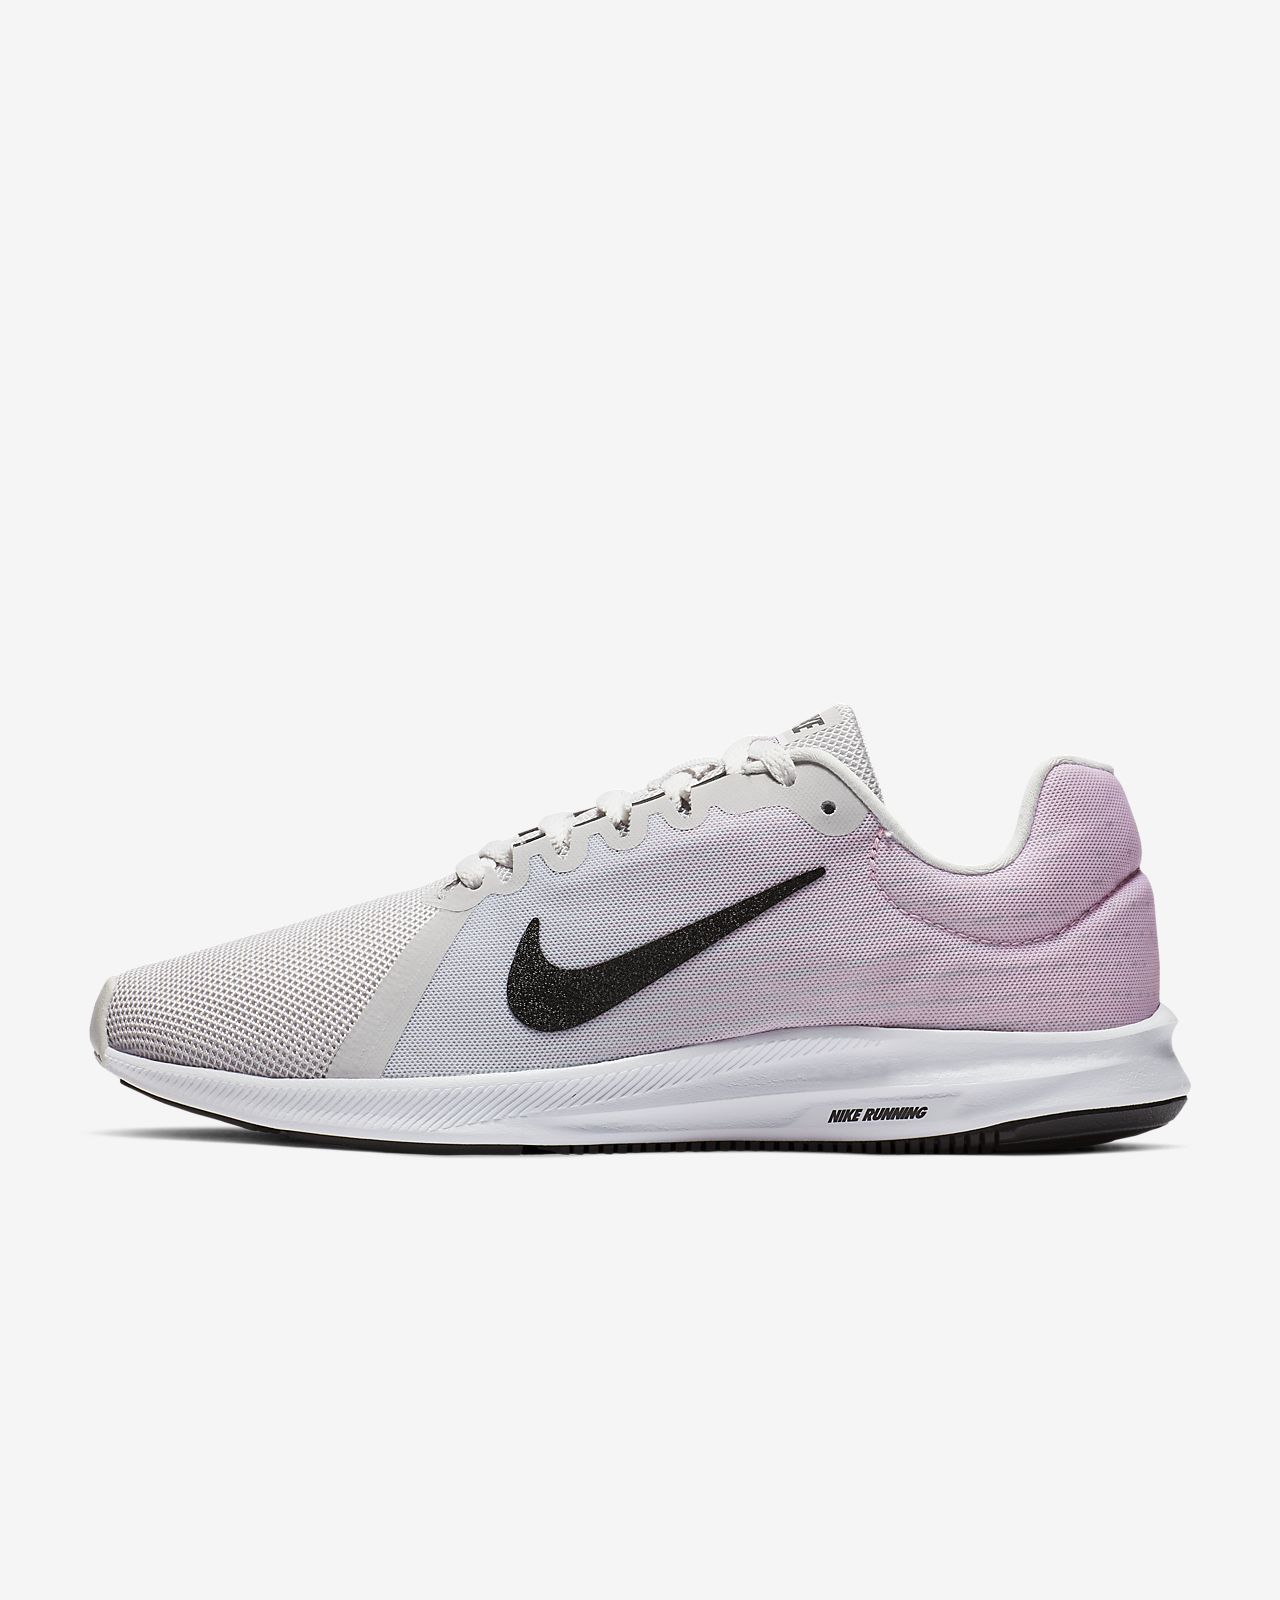 0666f22d5a5d Nike Downshifter 8 Women s Running Shoe. Nike.com GB